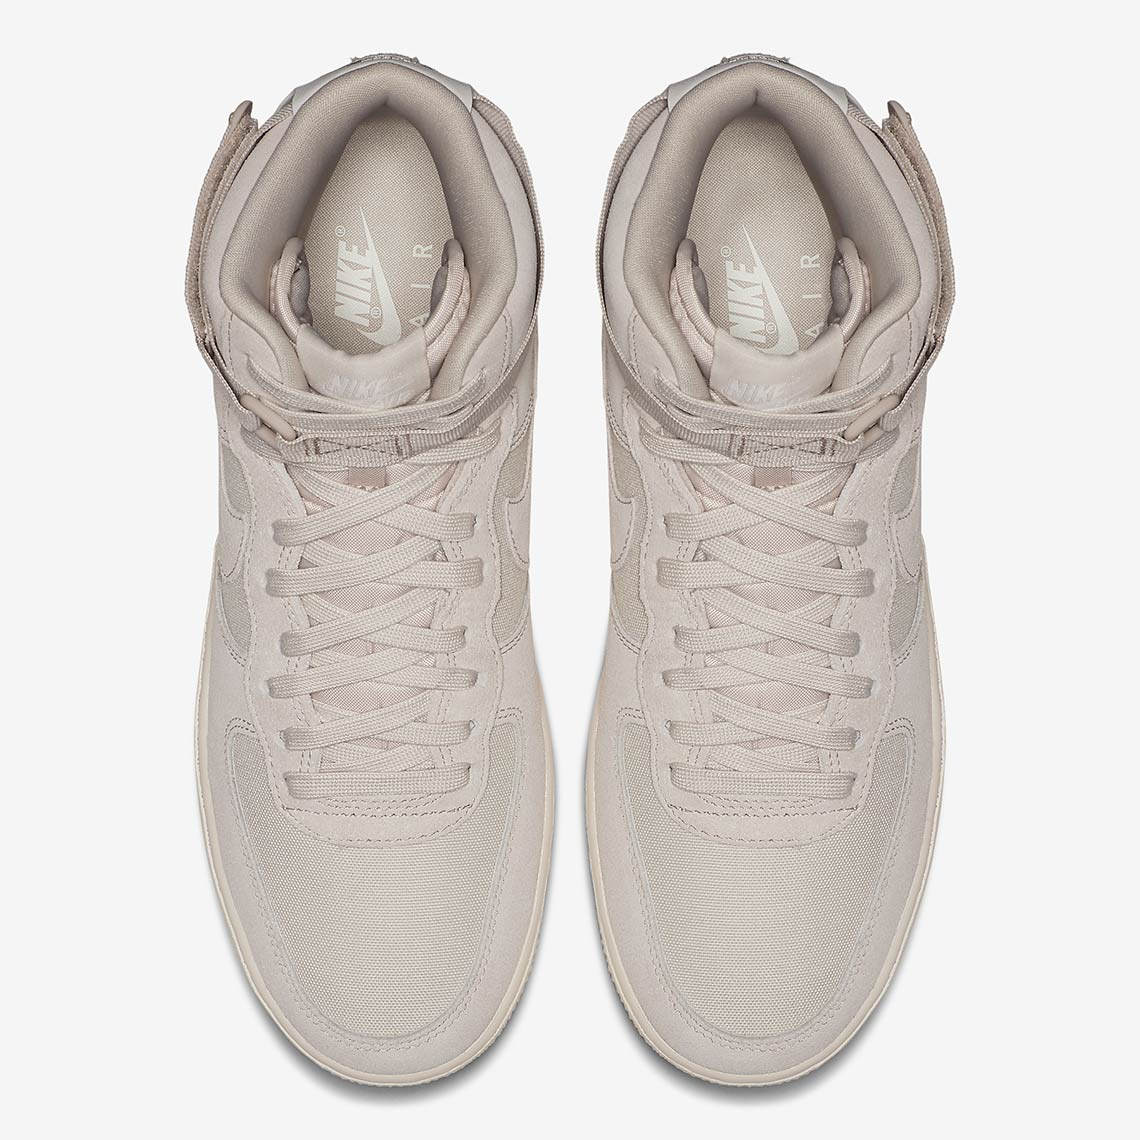 17ab80ac365db Nike Air Force 1 High Suede Where To Buy